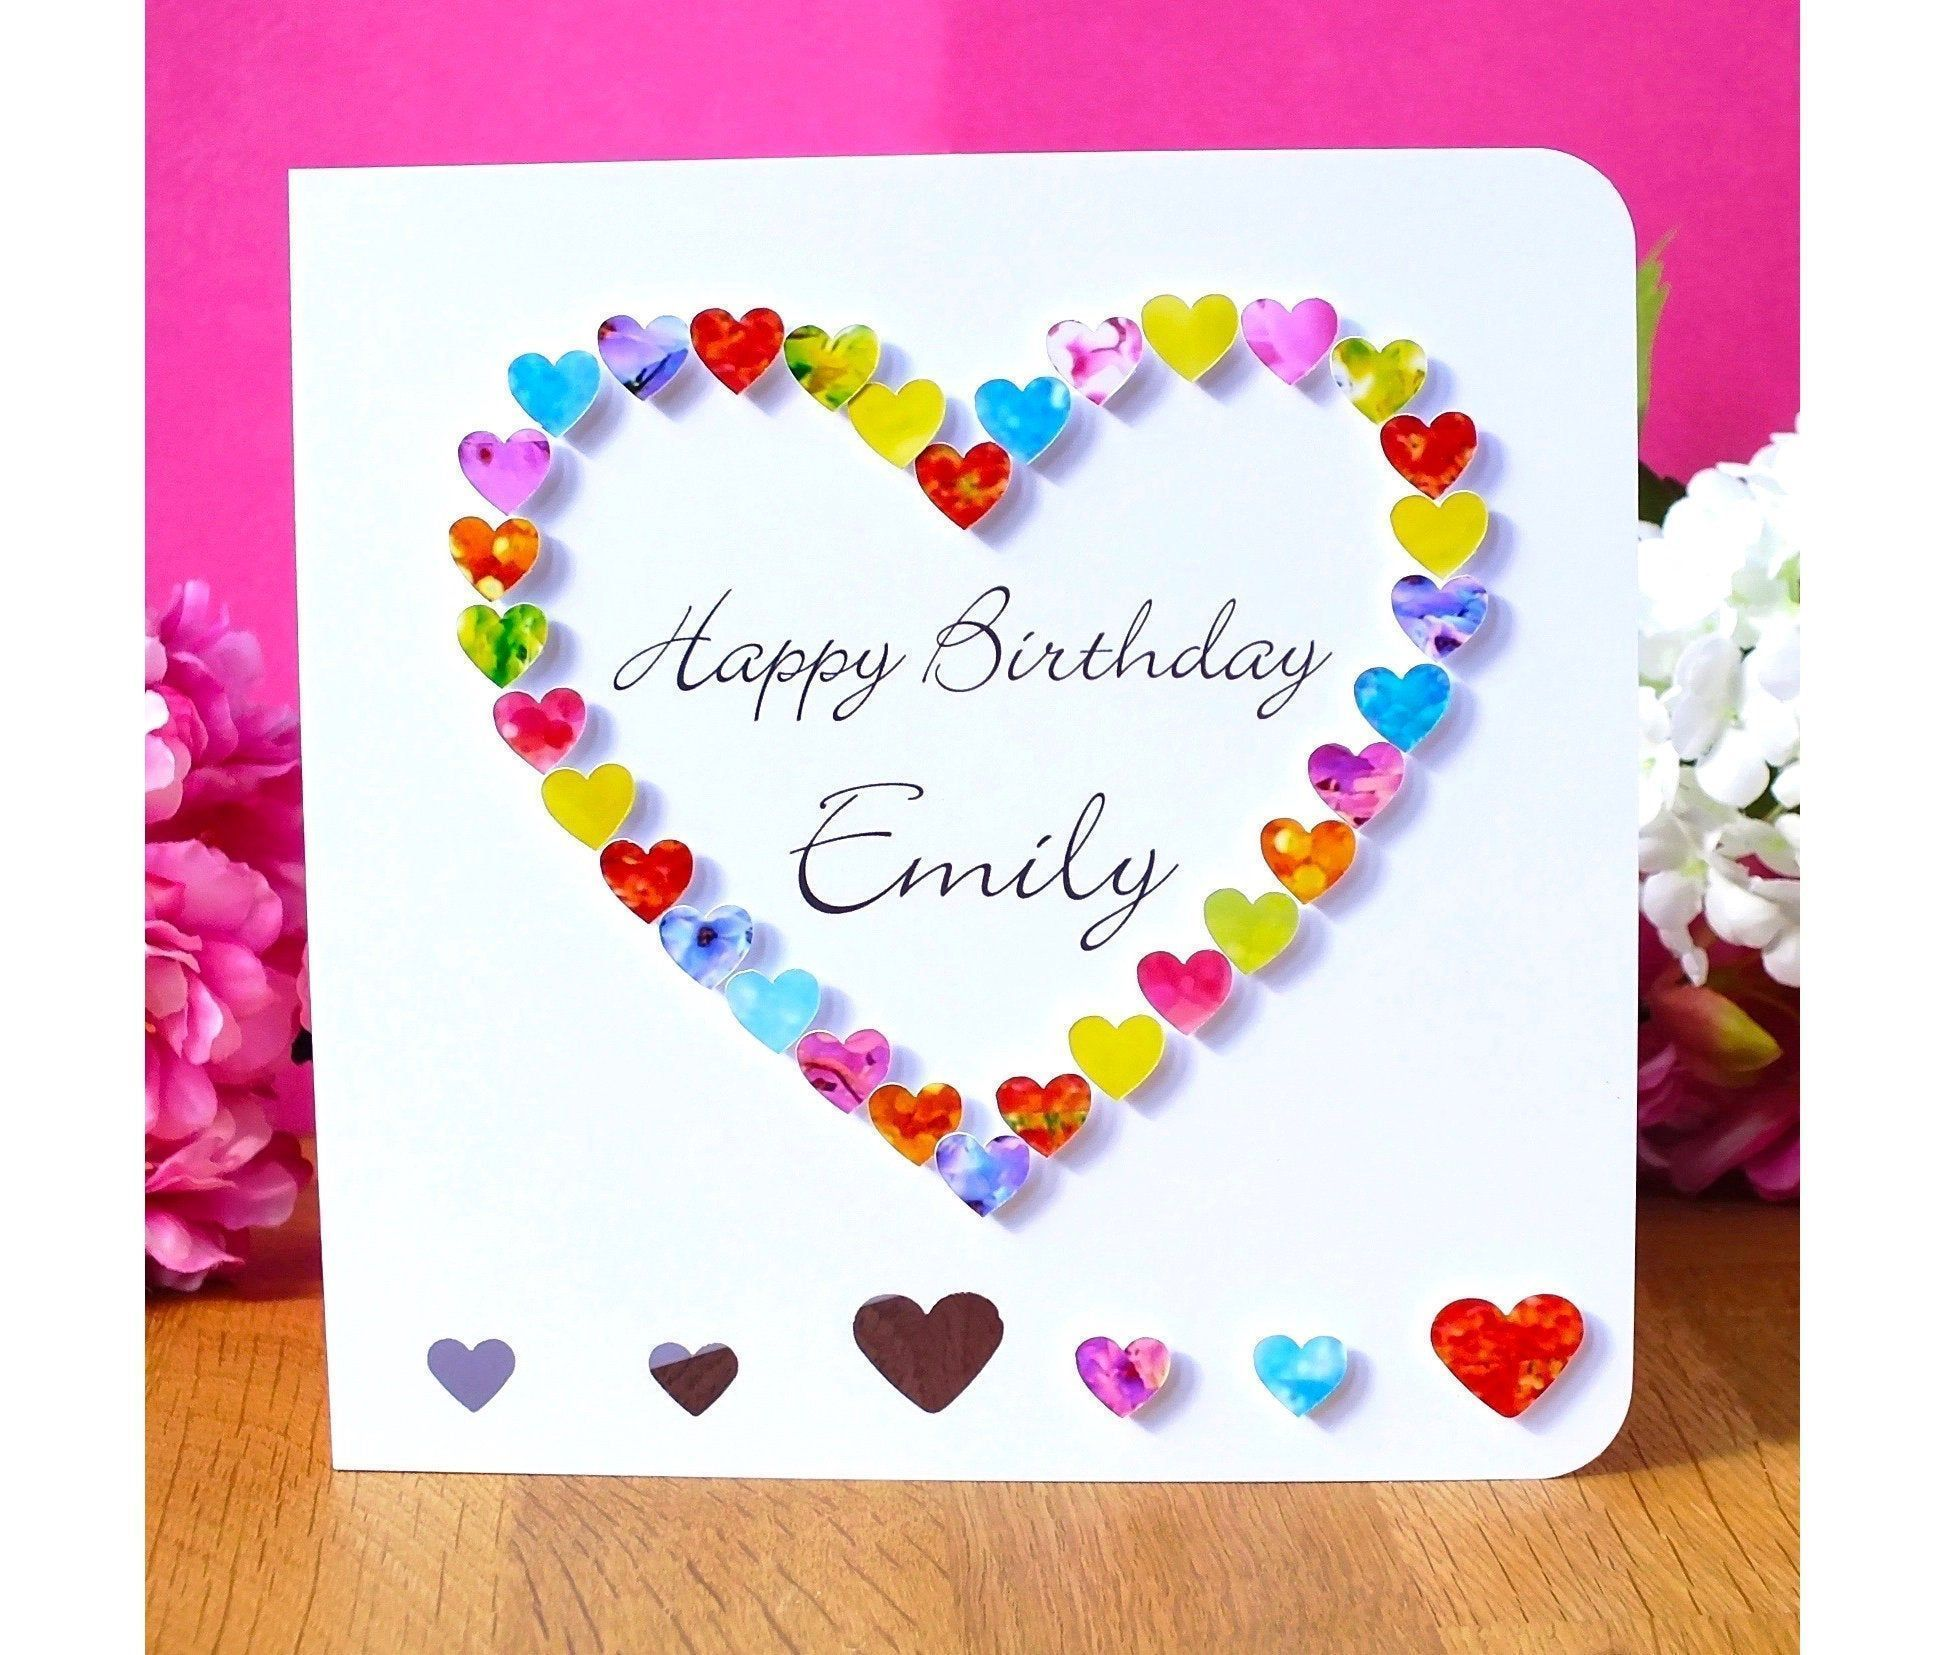 Handmade Personalised Birthday Card - Colourful Happy Birthday Card Customised with Name - Sister, Friend, Daughter, Mum, etc. #mumsetc Handmade Personalised Birthday Card - Colourful Happy Birthday Card Customised with Name - Sister, Friend, Daughter, Mum, etc. #mumsetc Handmade Personalised Birthday Card - Colourful Happy Birthday Card Customised with Name - Sister, Friend, Daughter, Mum, etc. #mumsetc Handmade Personalised Birthday Card - Colourful Happy Birthday Card Customised with Name - S #mumsetc